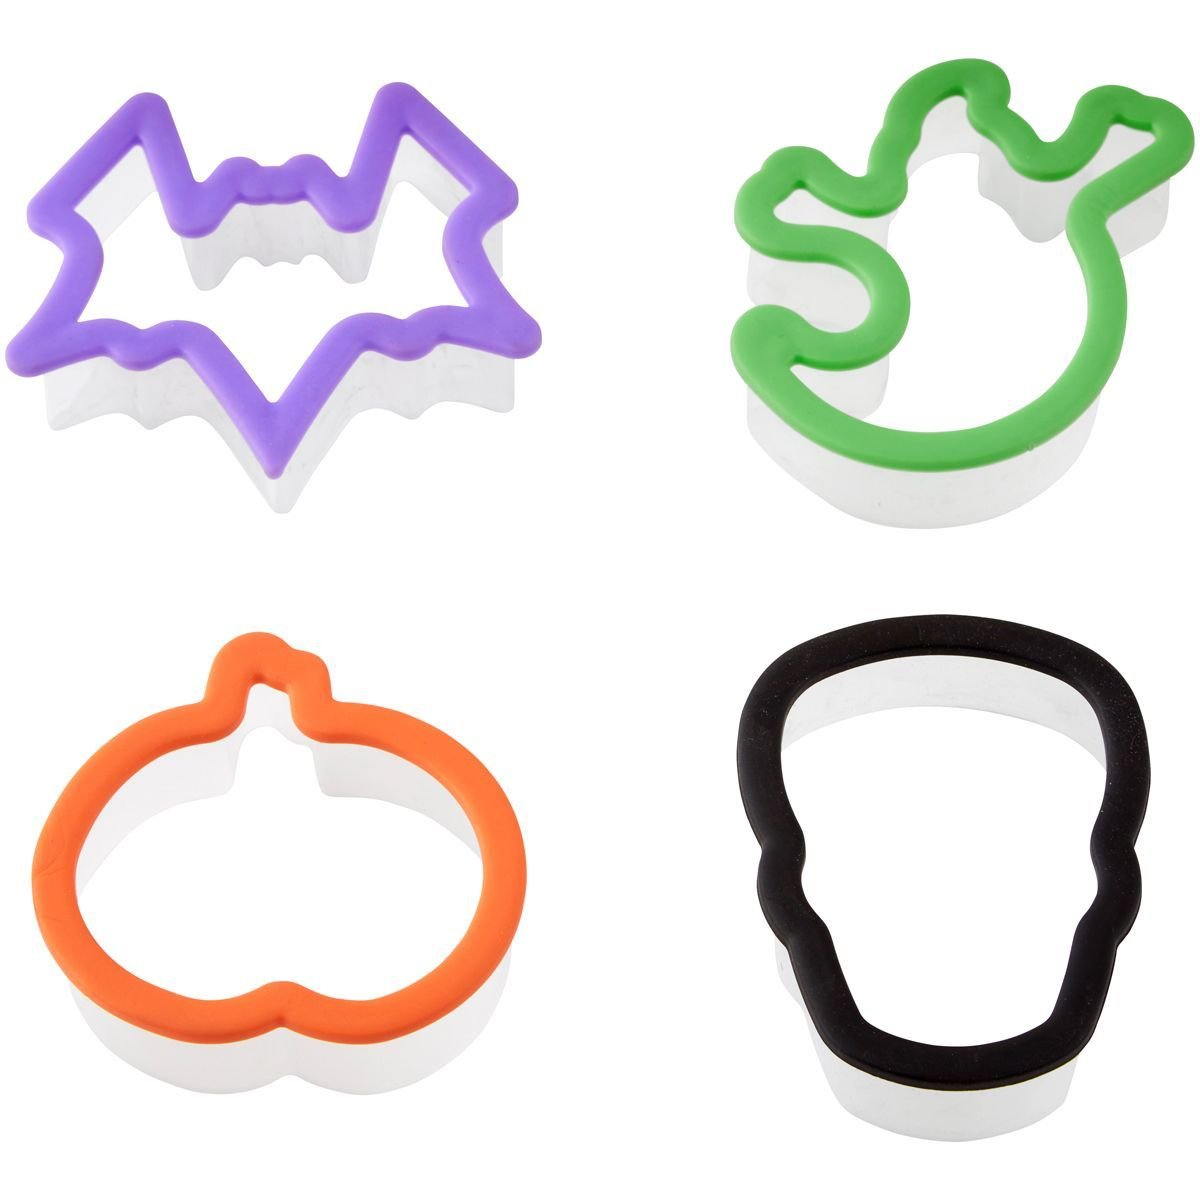 Wilton Halloween -Net of 4 Cookie Cutters - Σετ 4τεμ πλαστικά κουπ πατ με θέμα χαλογουίν